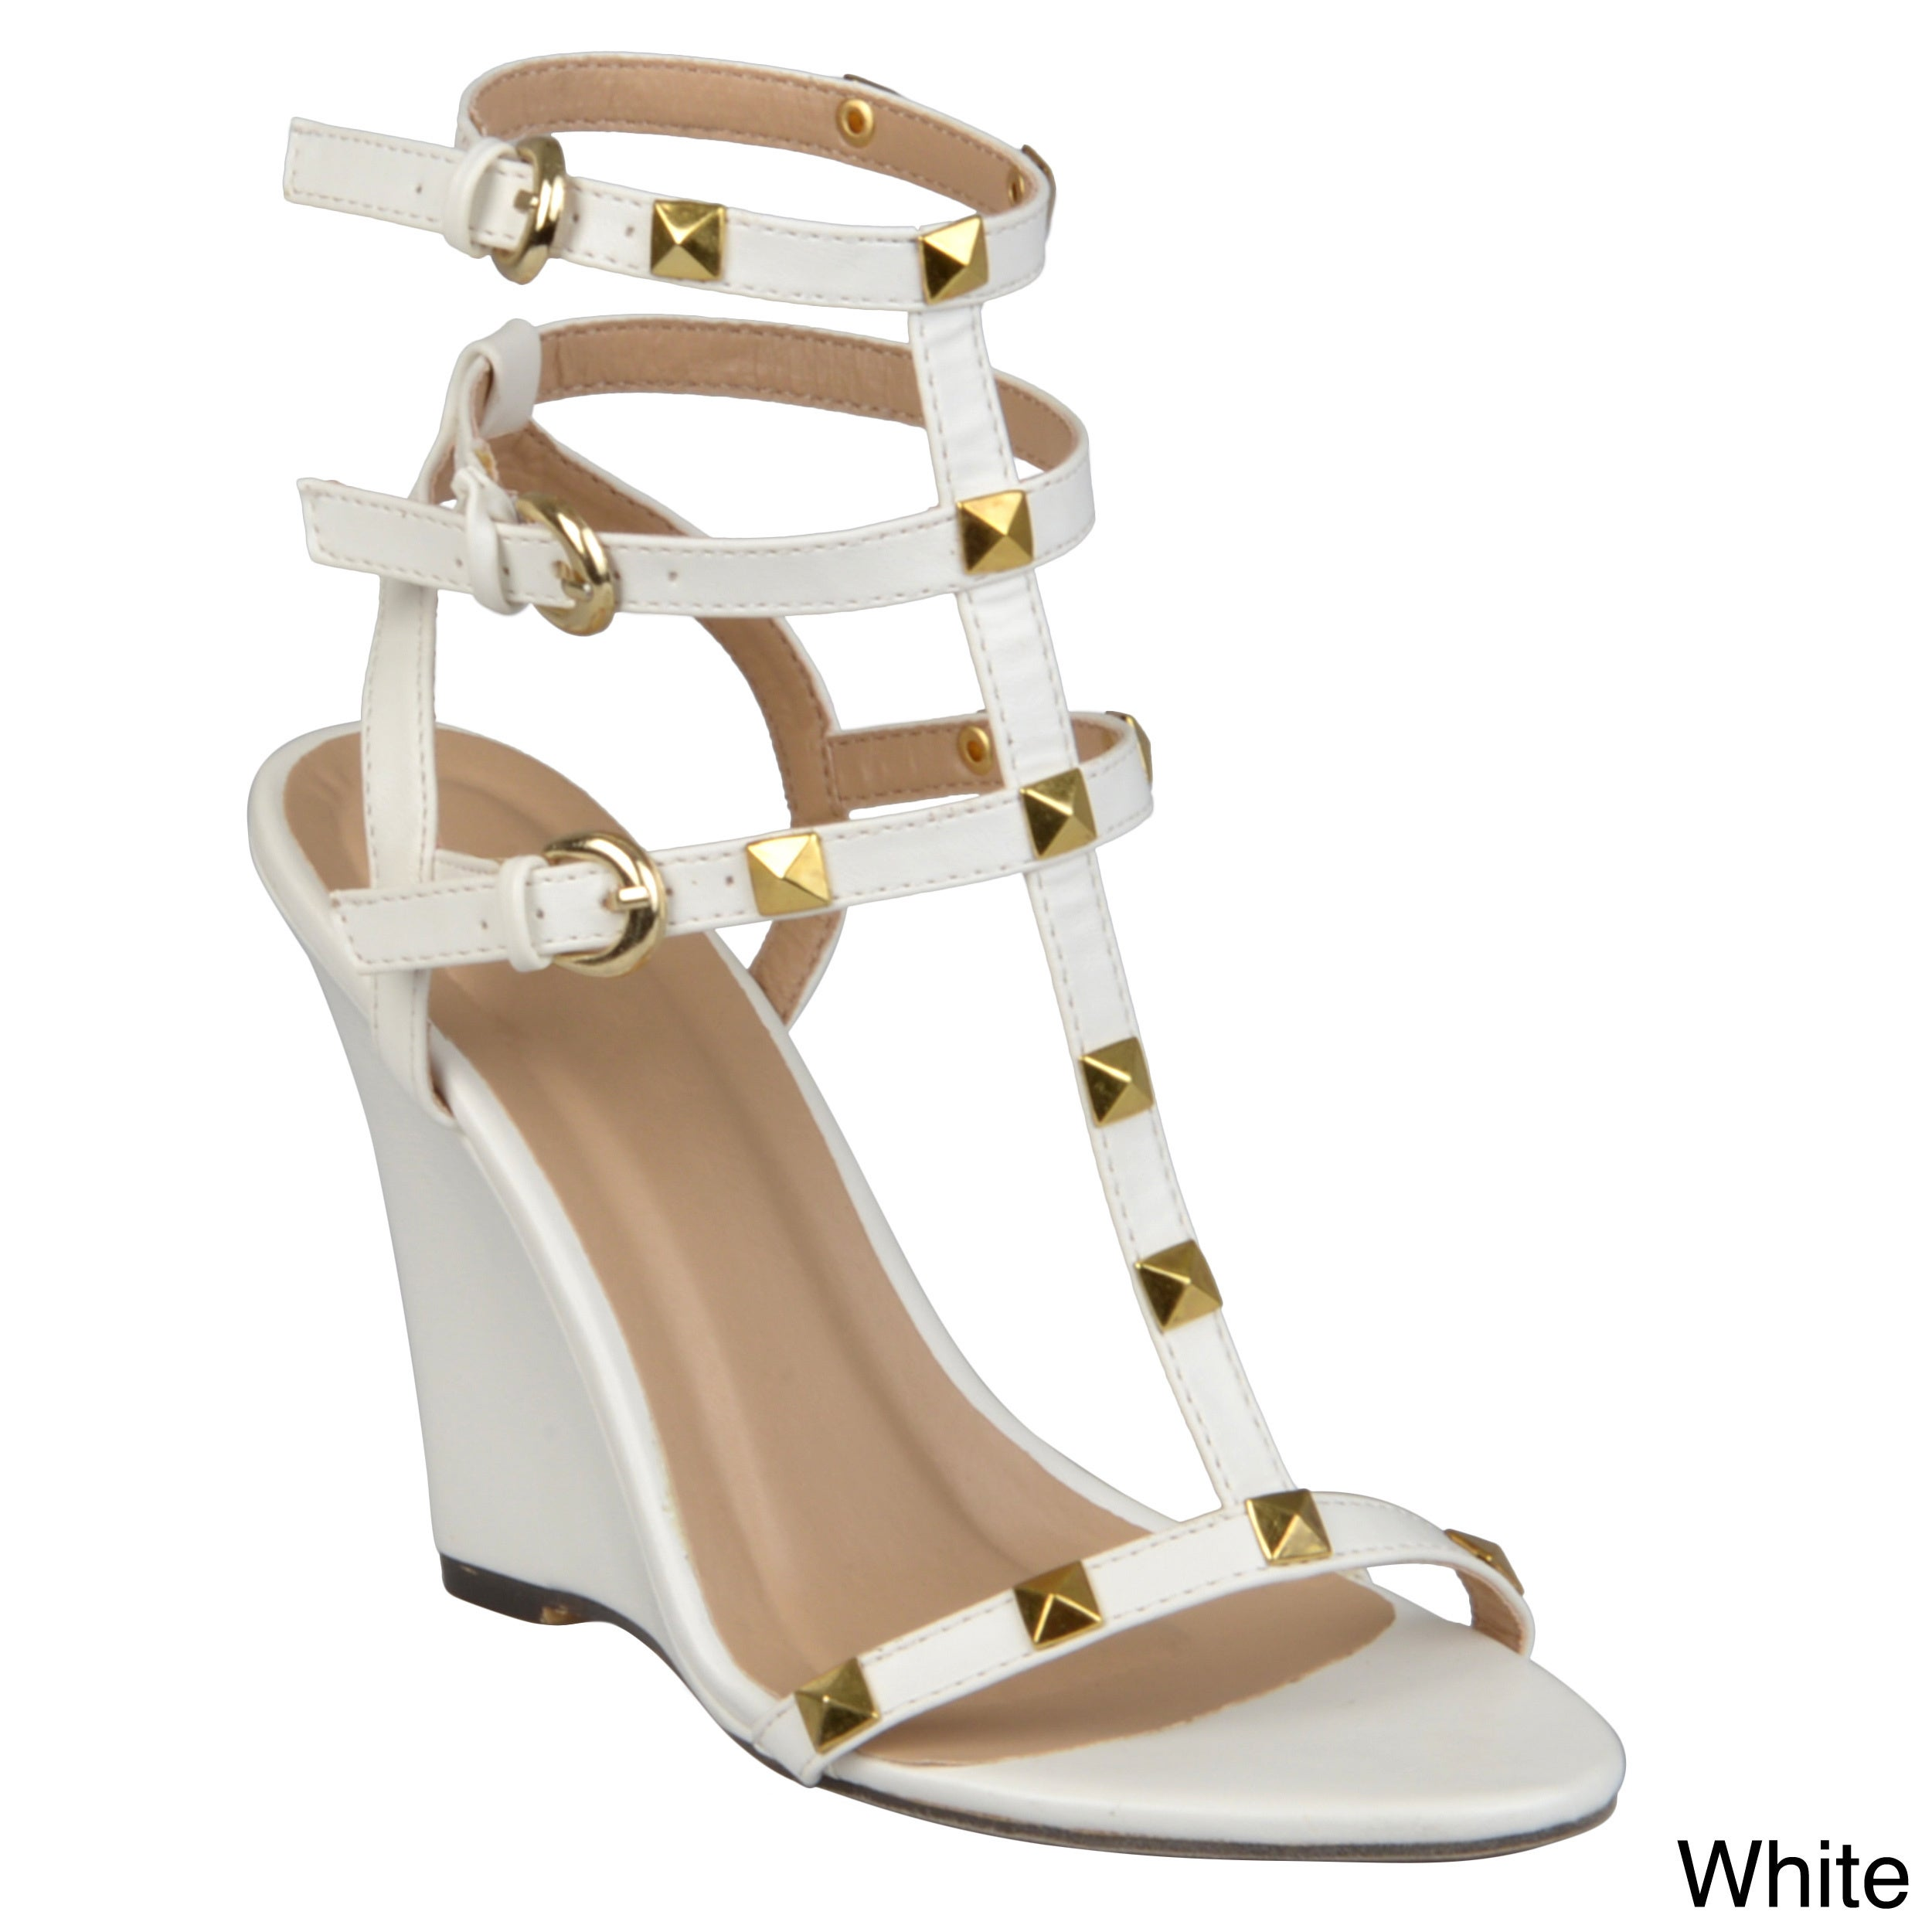 d701feae407d Shop Journee Collection Women s  Jaida-8  Studded T-strap Wedges - Free  Shipping On Orders Over  45 - Overstock.com - 9100236